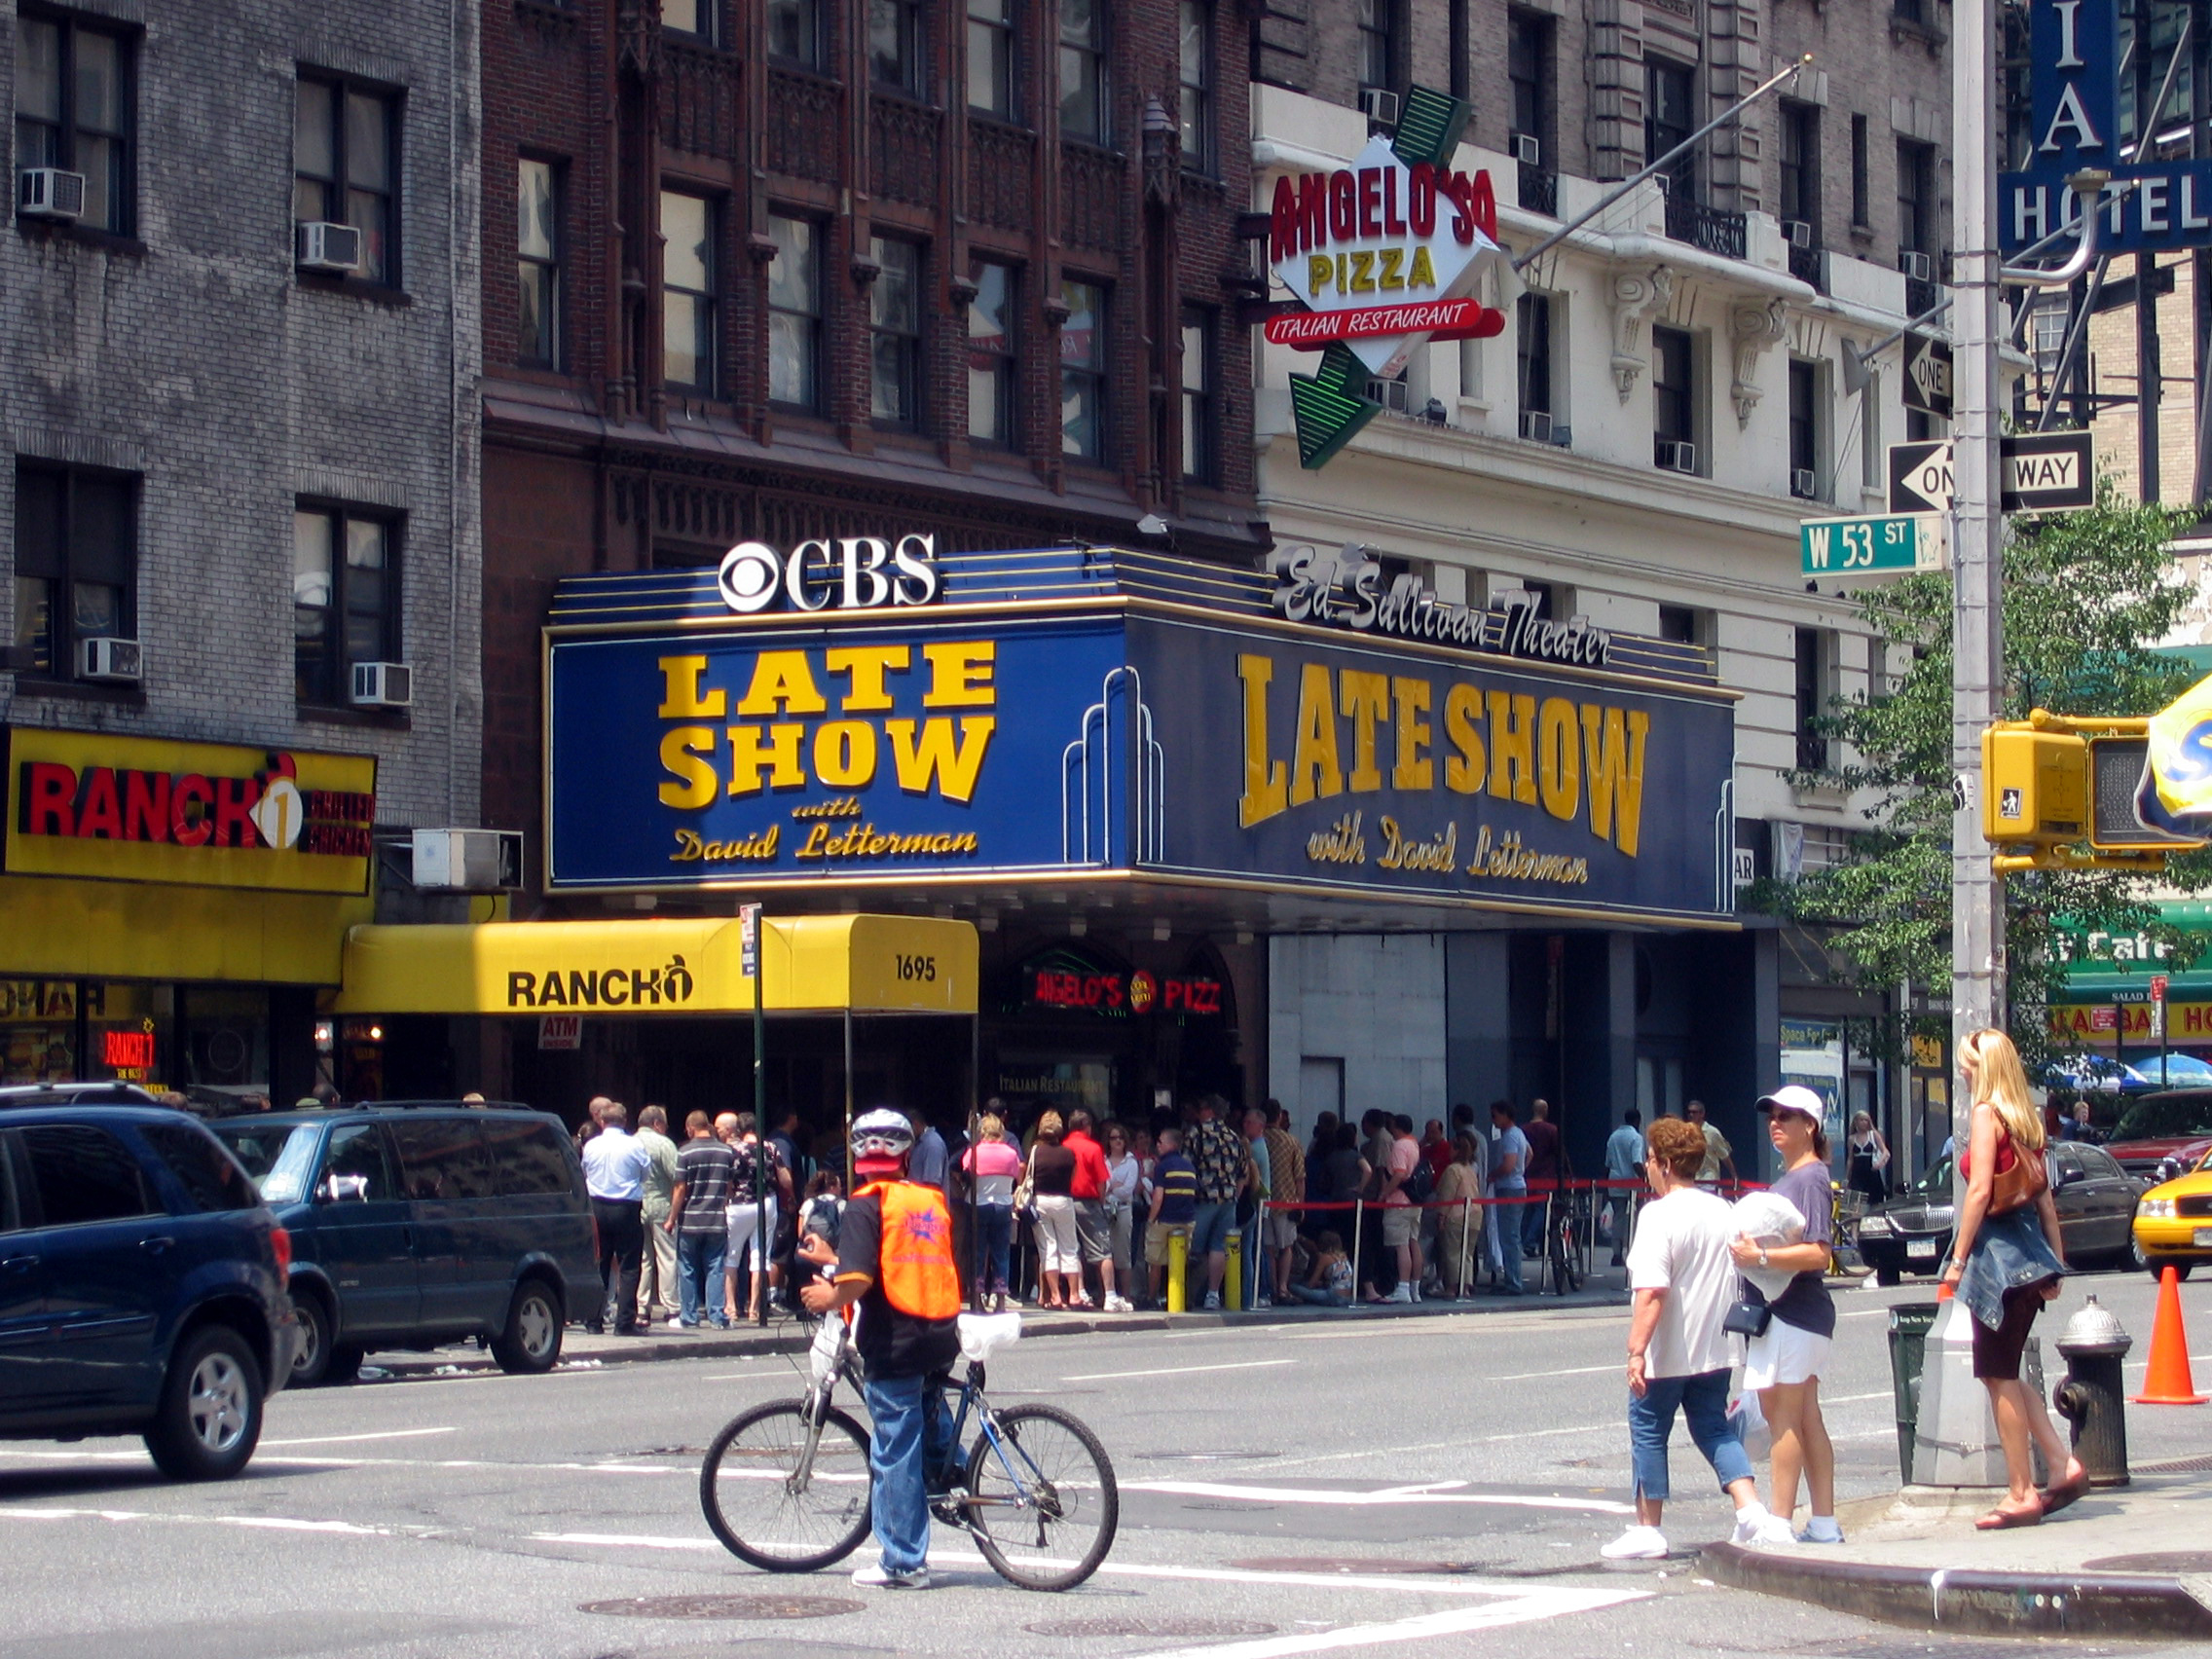 CBS's Ed Sullivan Theater in Manhattan, home to the Late Show with David Letterman